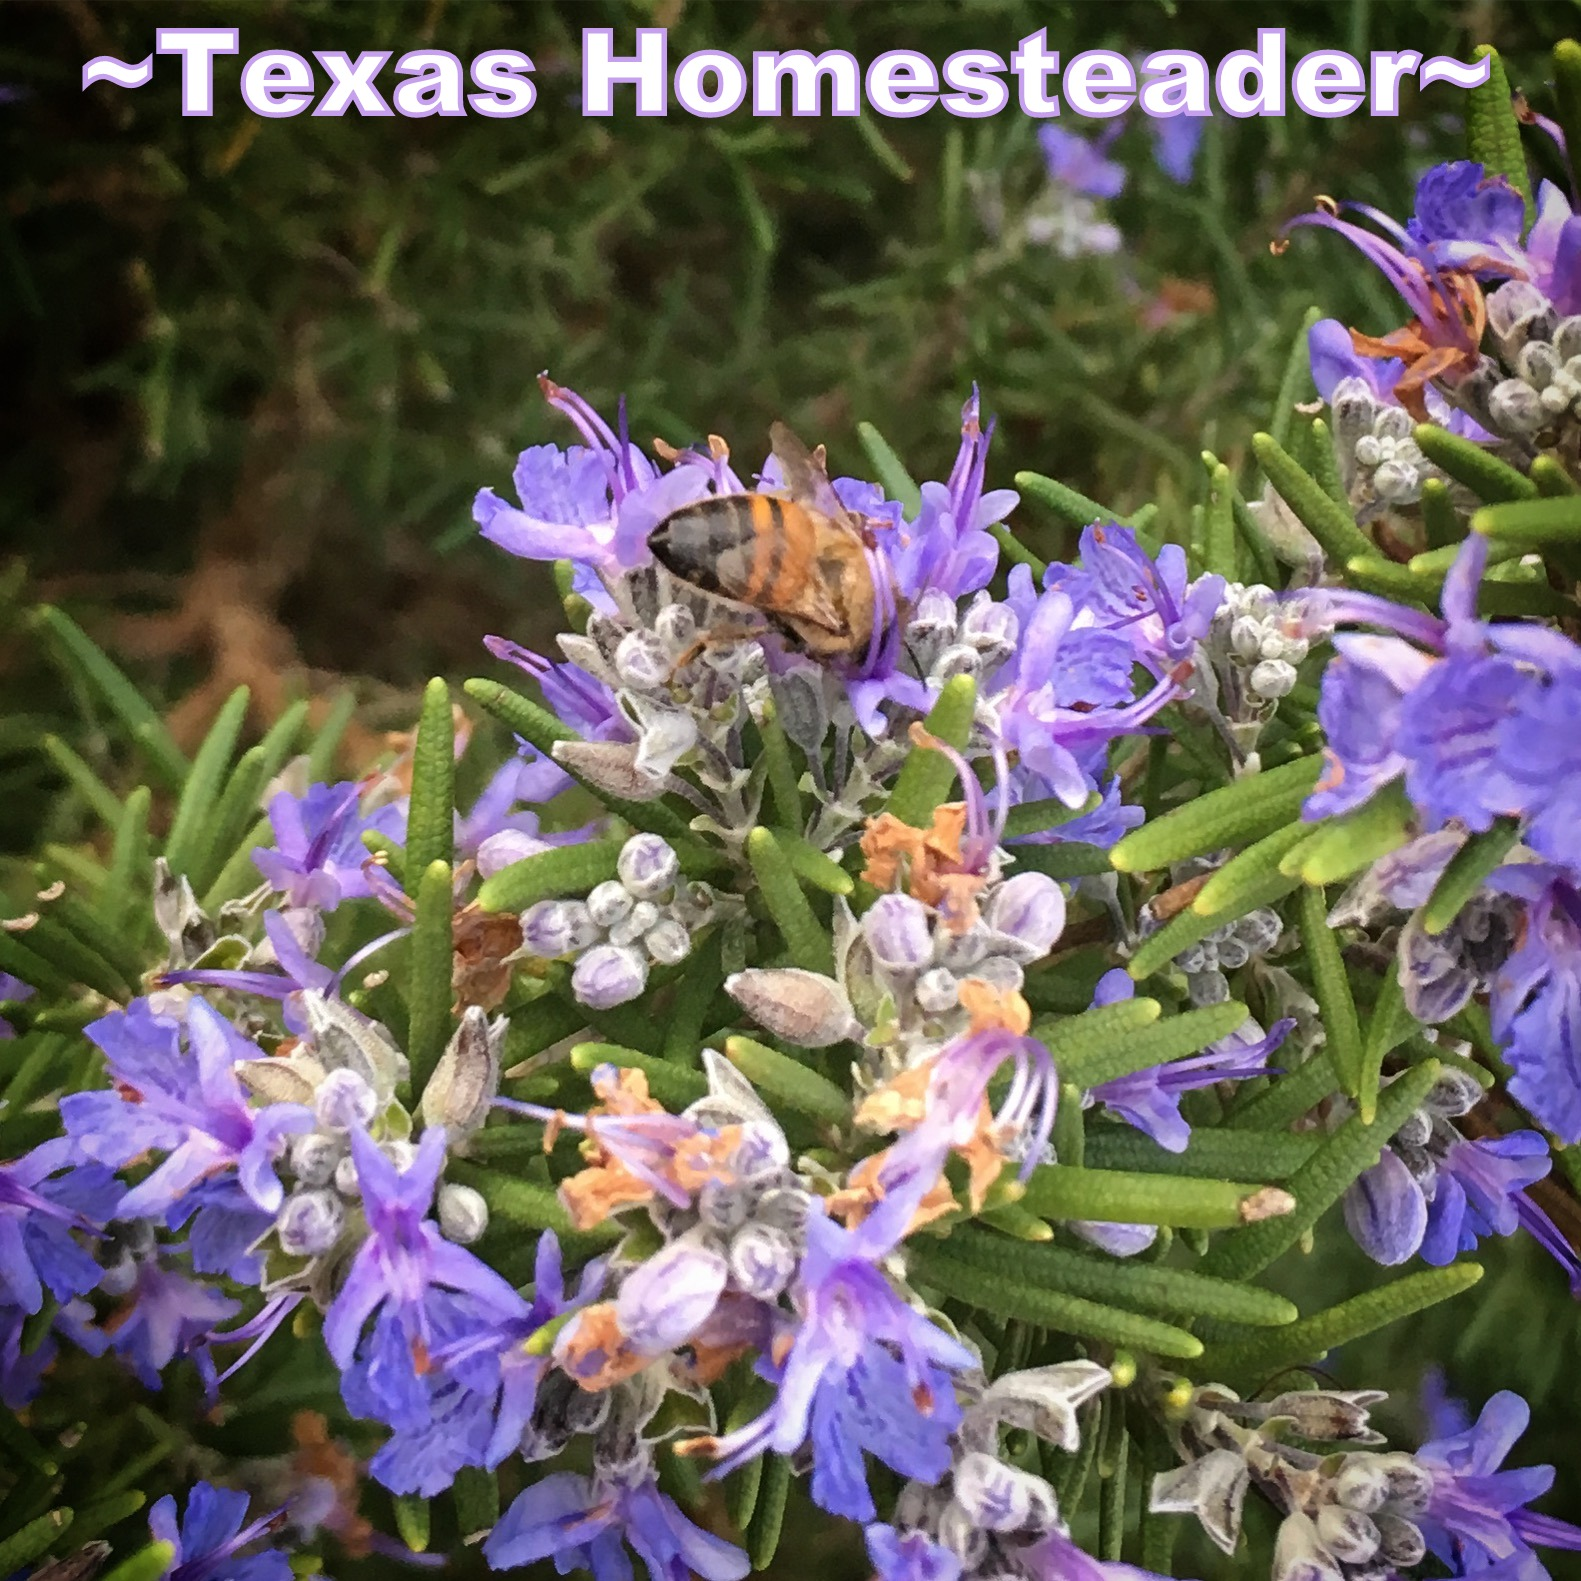 Blooming rosemary. EDIBLE LANDSCAPING: There's no reason you can't plant beautiful yet edible plants right in your decorative landscaping! #TexasHomesteader